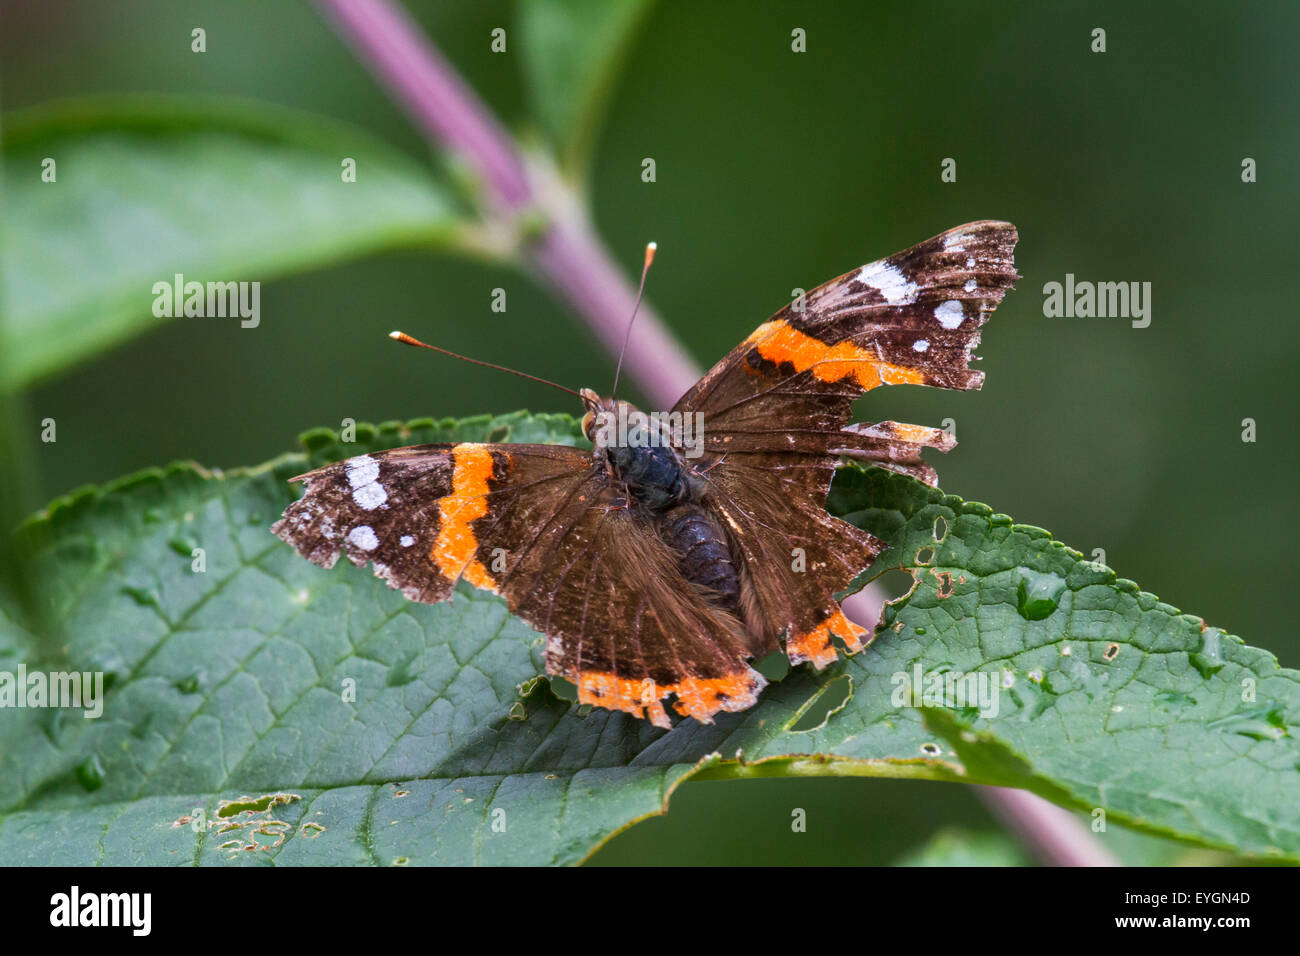 Red Admiral (Vanessa atalanta) butterfly with badly damaged wings - Stock Image